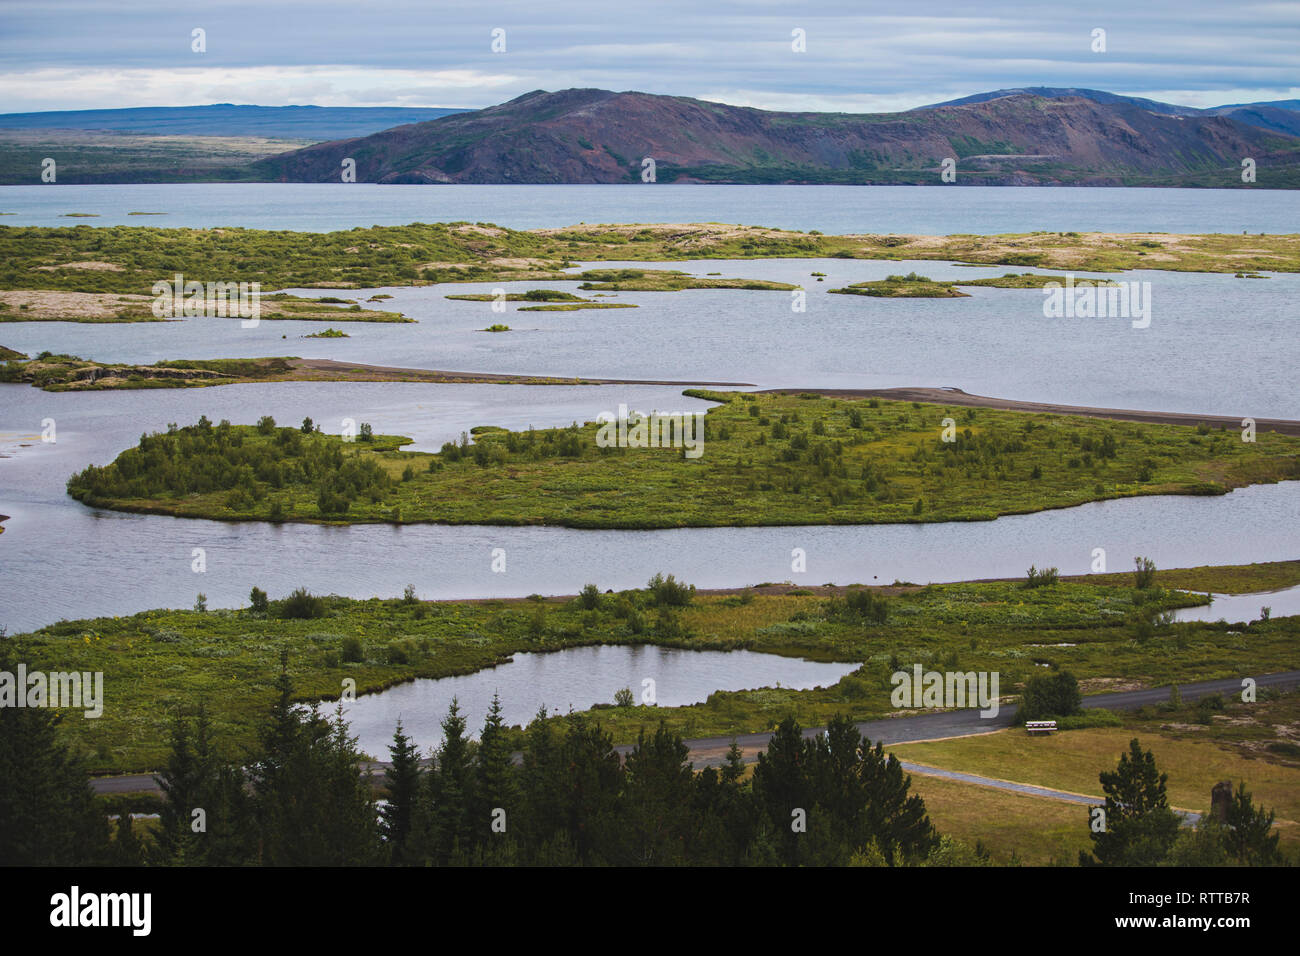 Mountains Tingvallir Iceland where the worlds first parliament settled. Captured at summer season Stock Photo